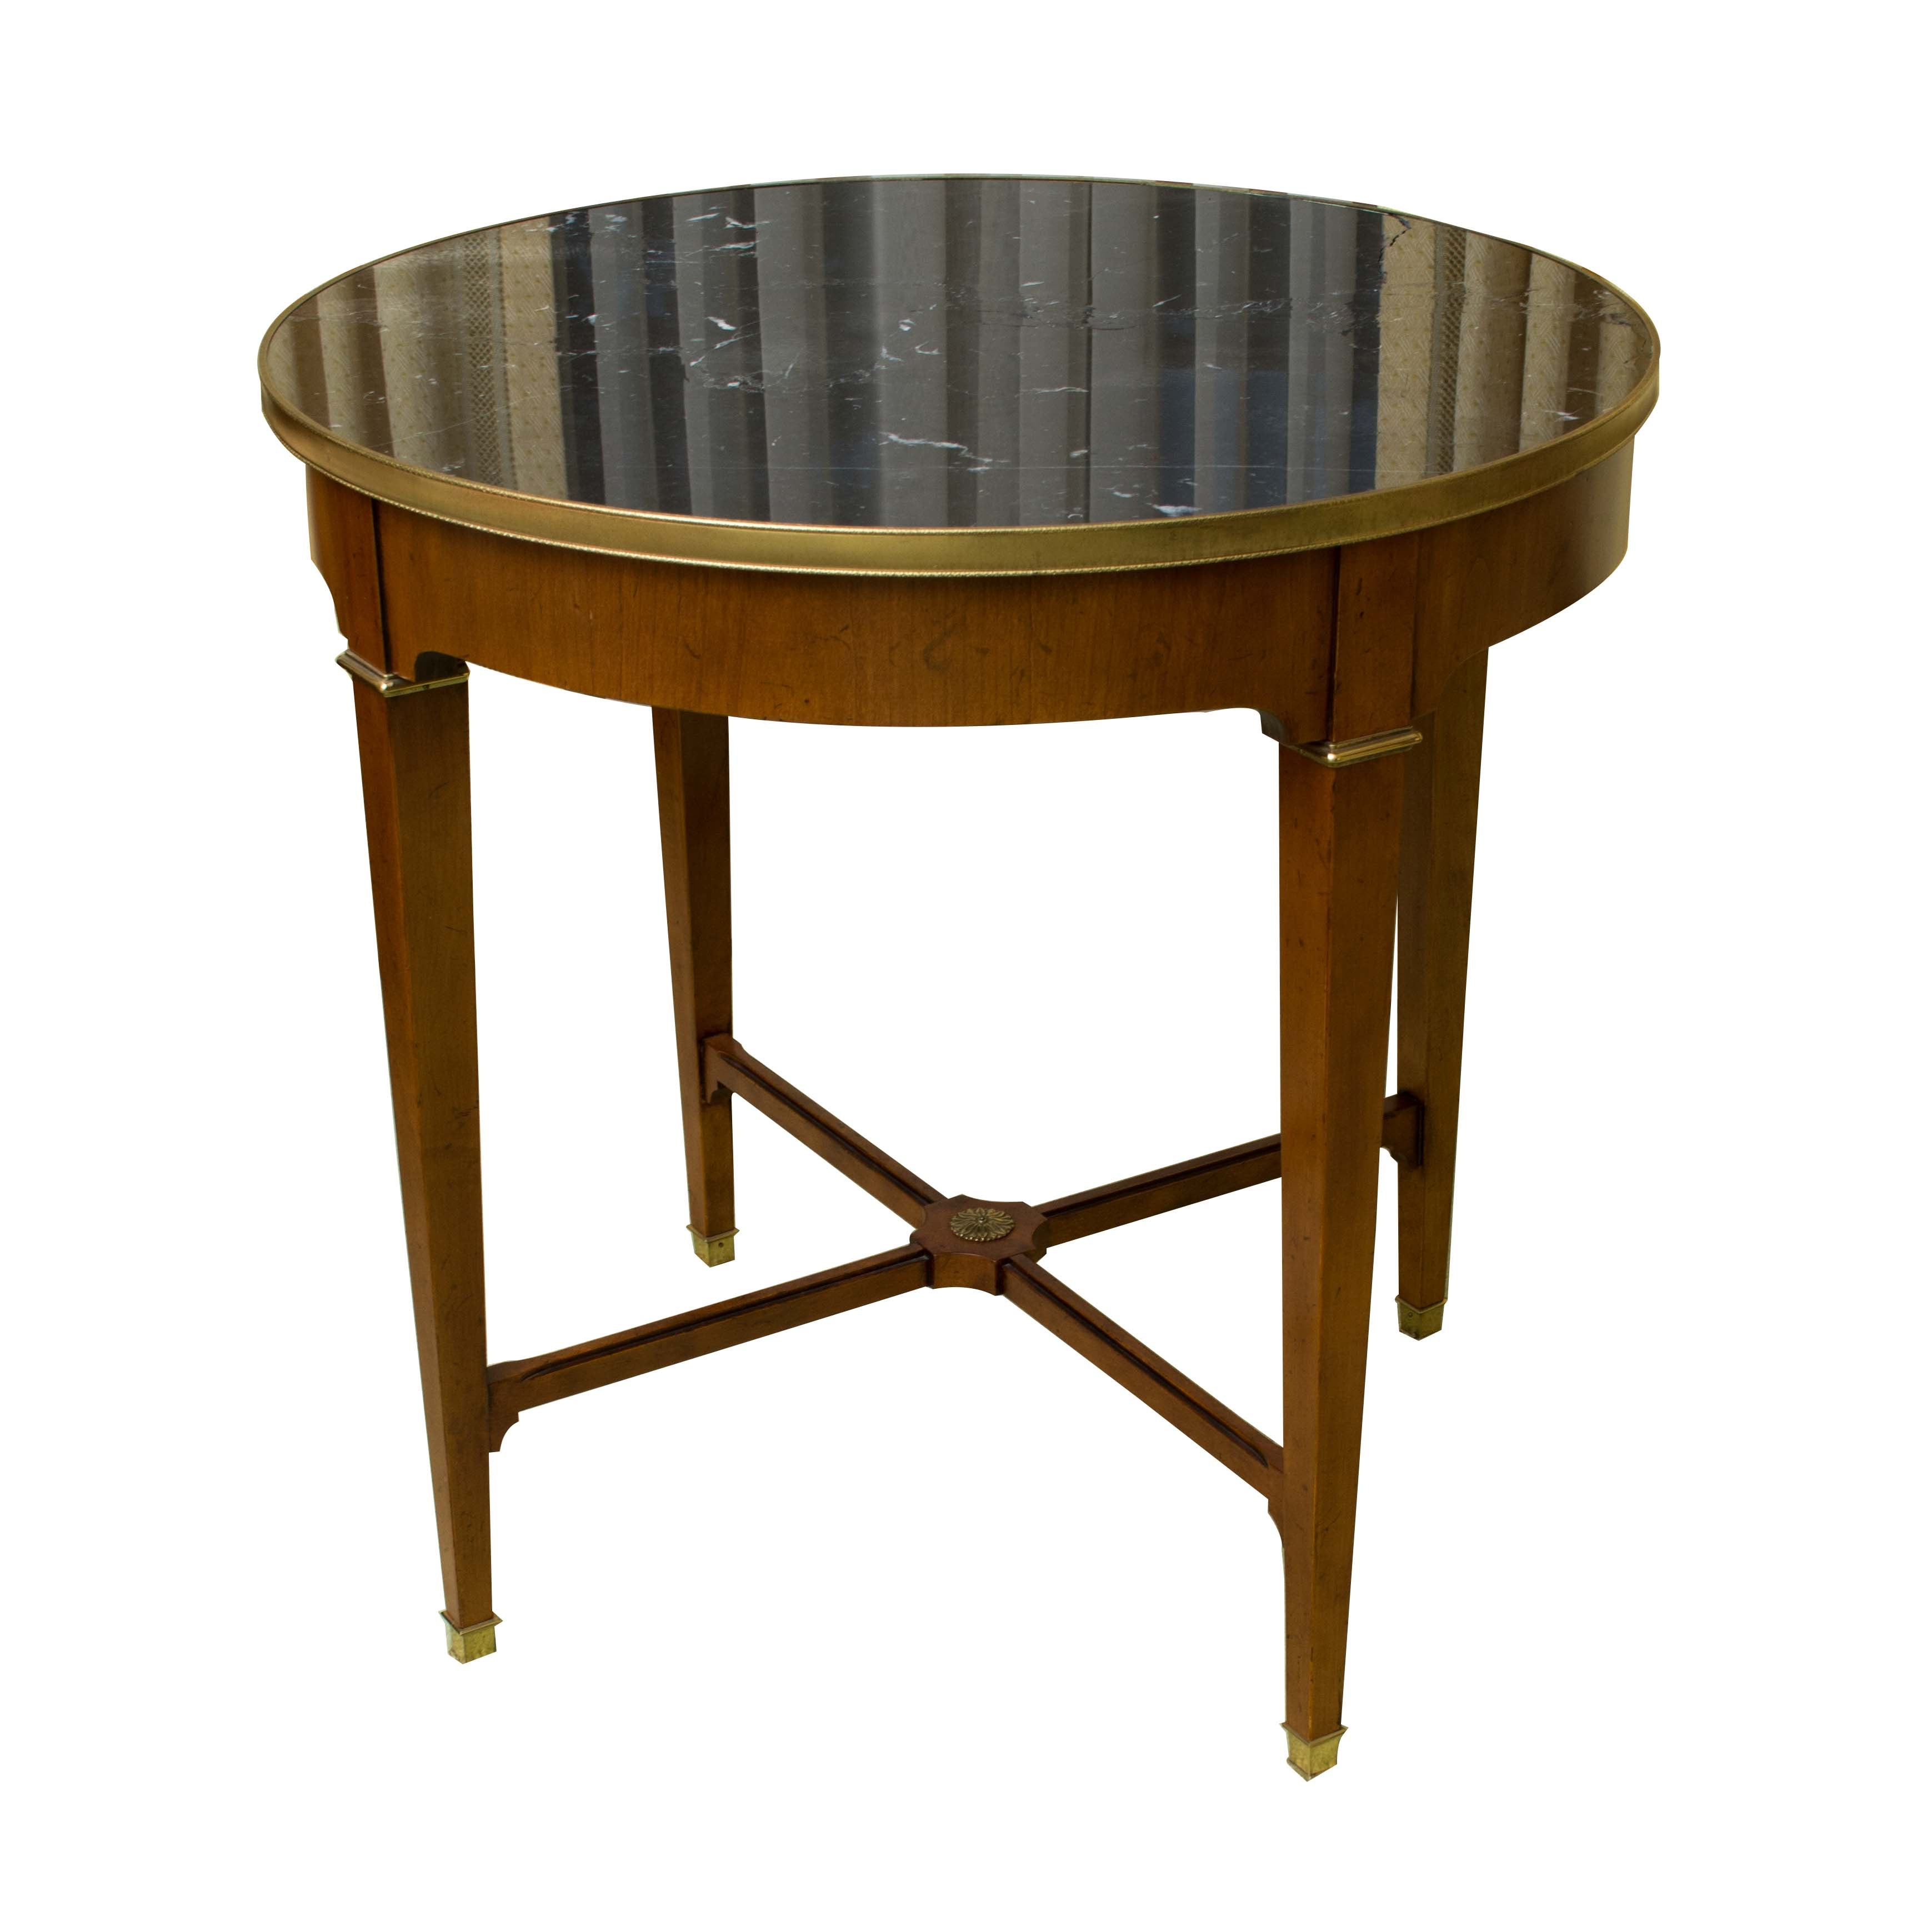 Directoire Style Marble Table By Baker Furniture ...